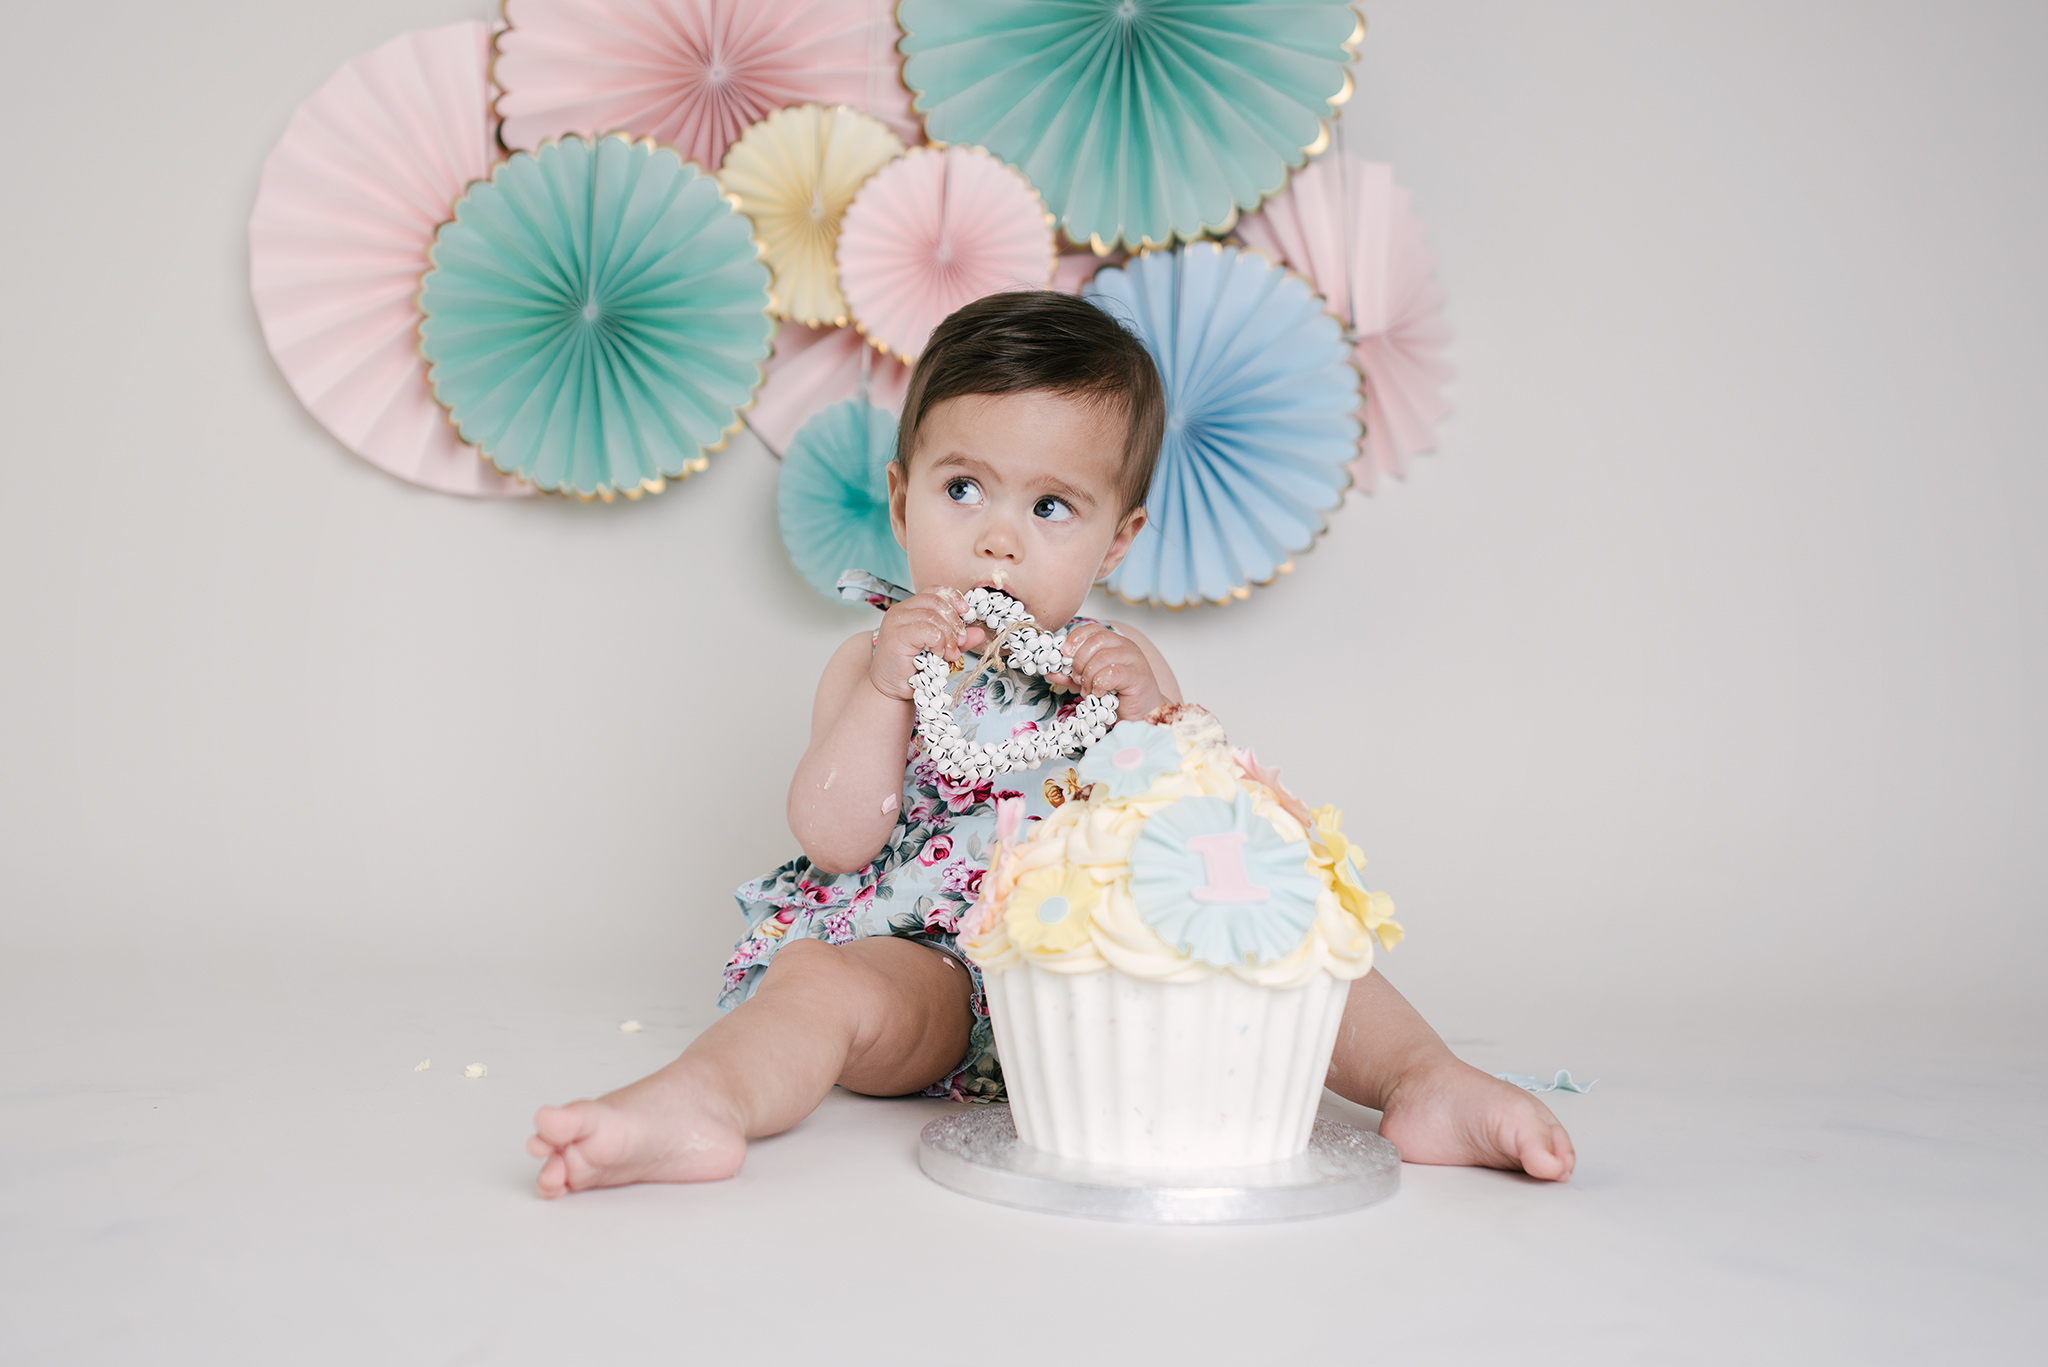 Little girl wearing mint and pink floral romper with fans behind eating cake | Cake Smash Photographer Aylesbury Buckinghamshire and Thame Oxfordshire